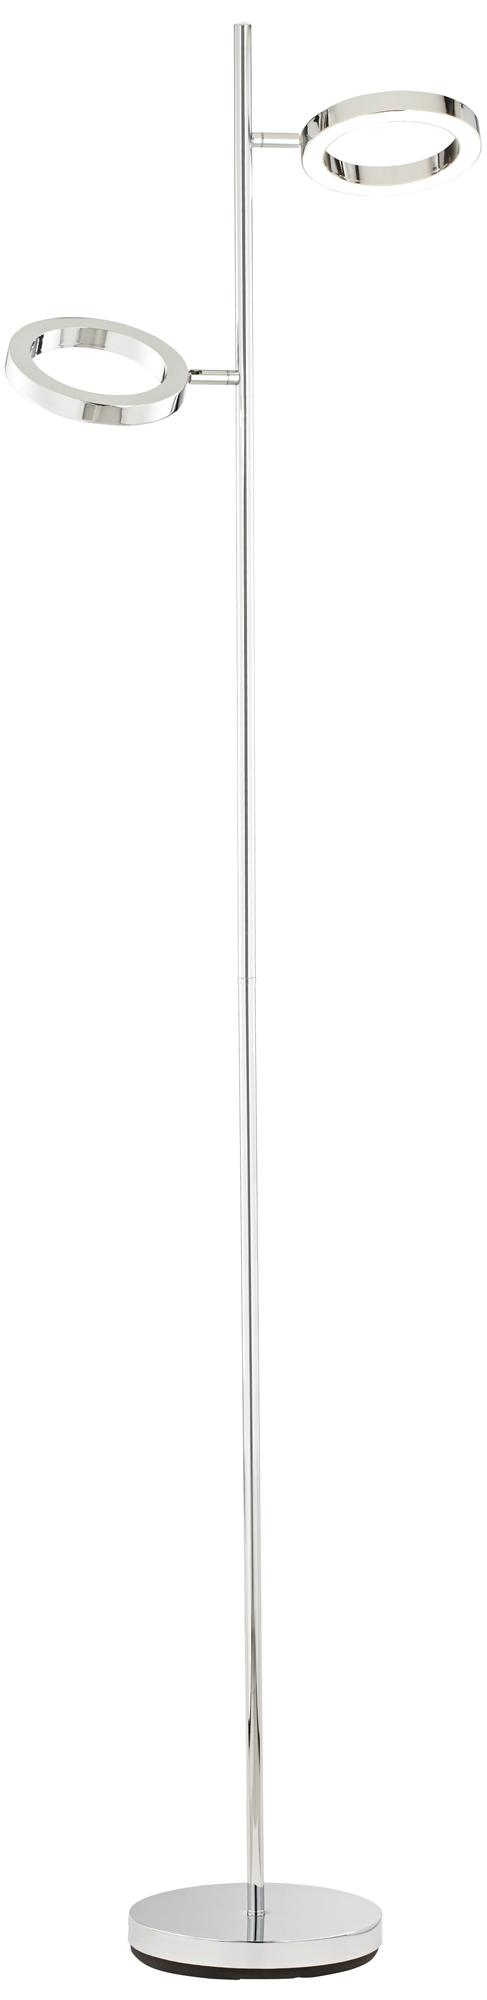 Possini Euro Gillette 2-Light Chrome LED Floor Lamp (6V531)